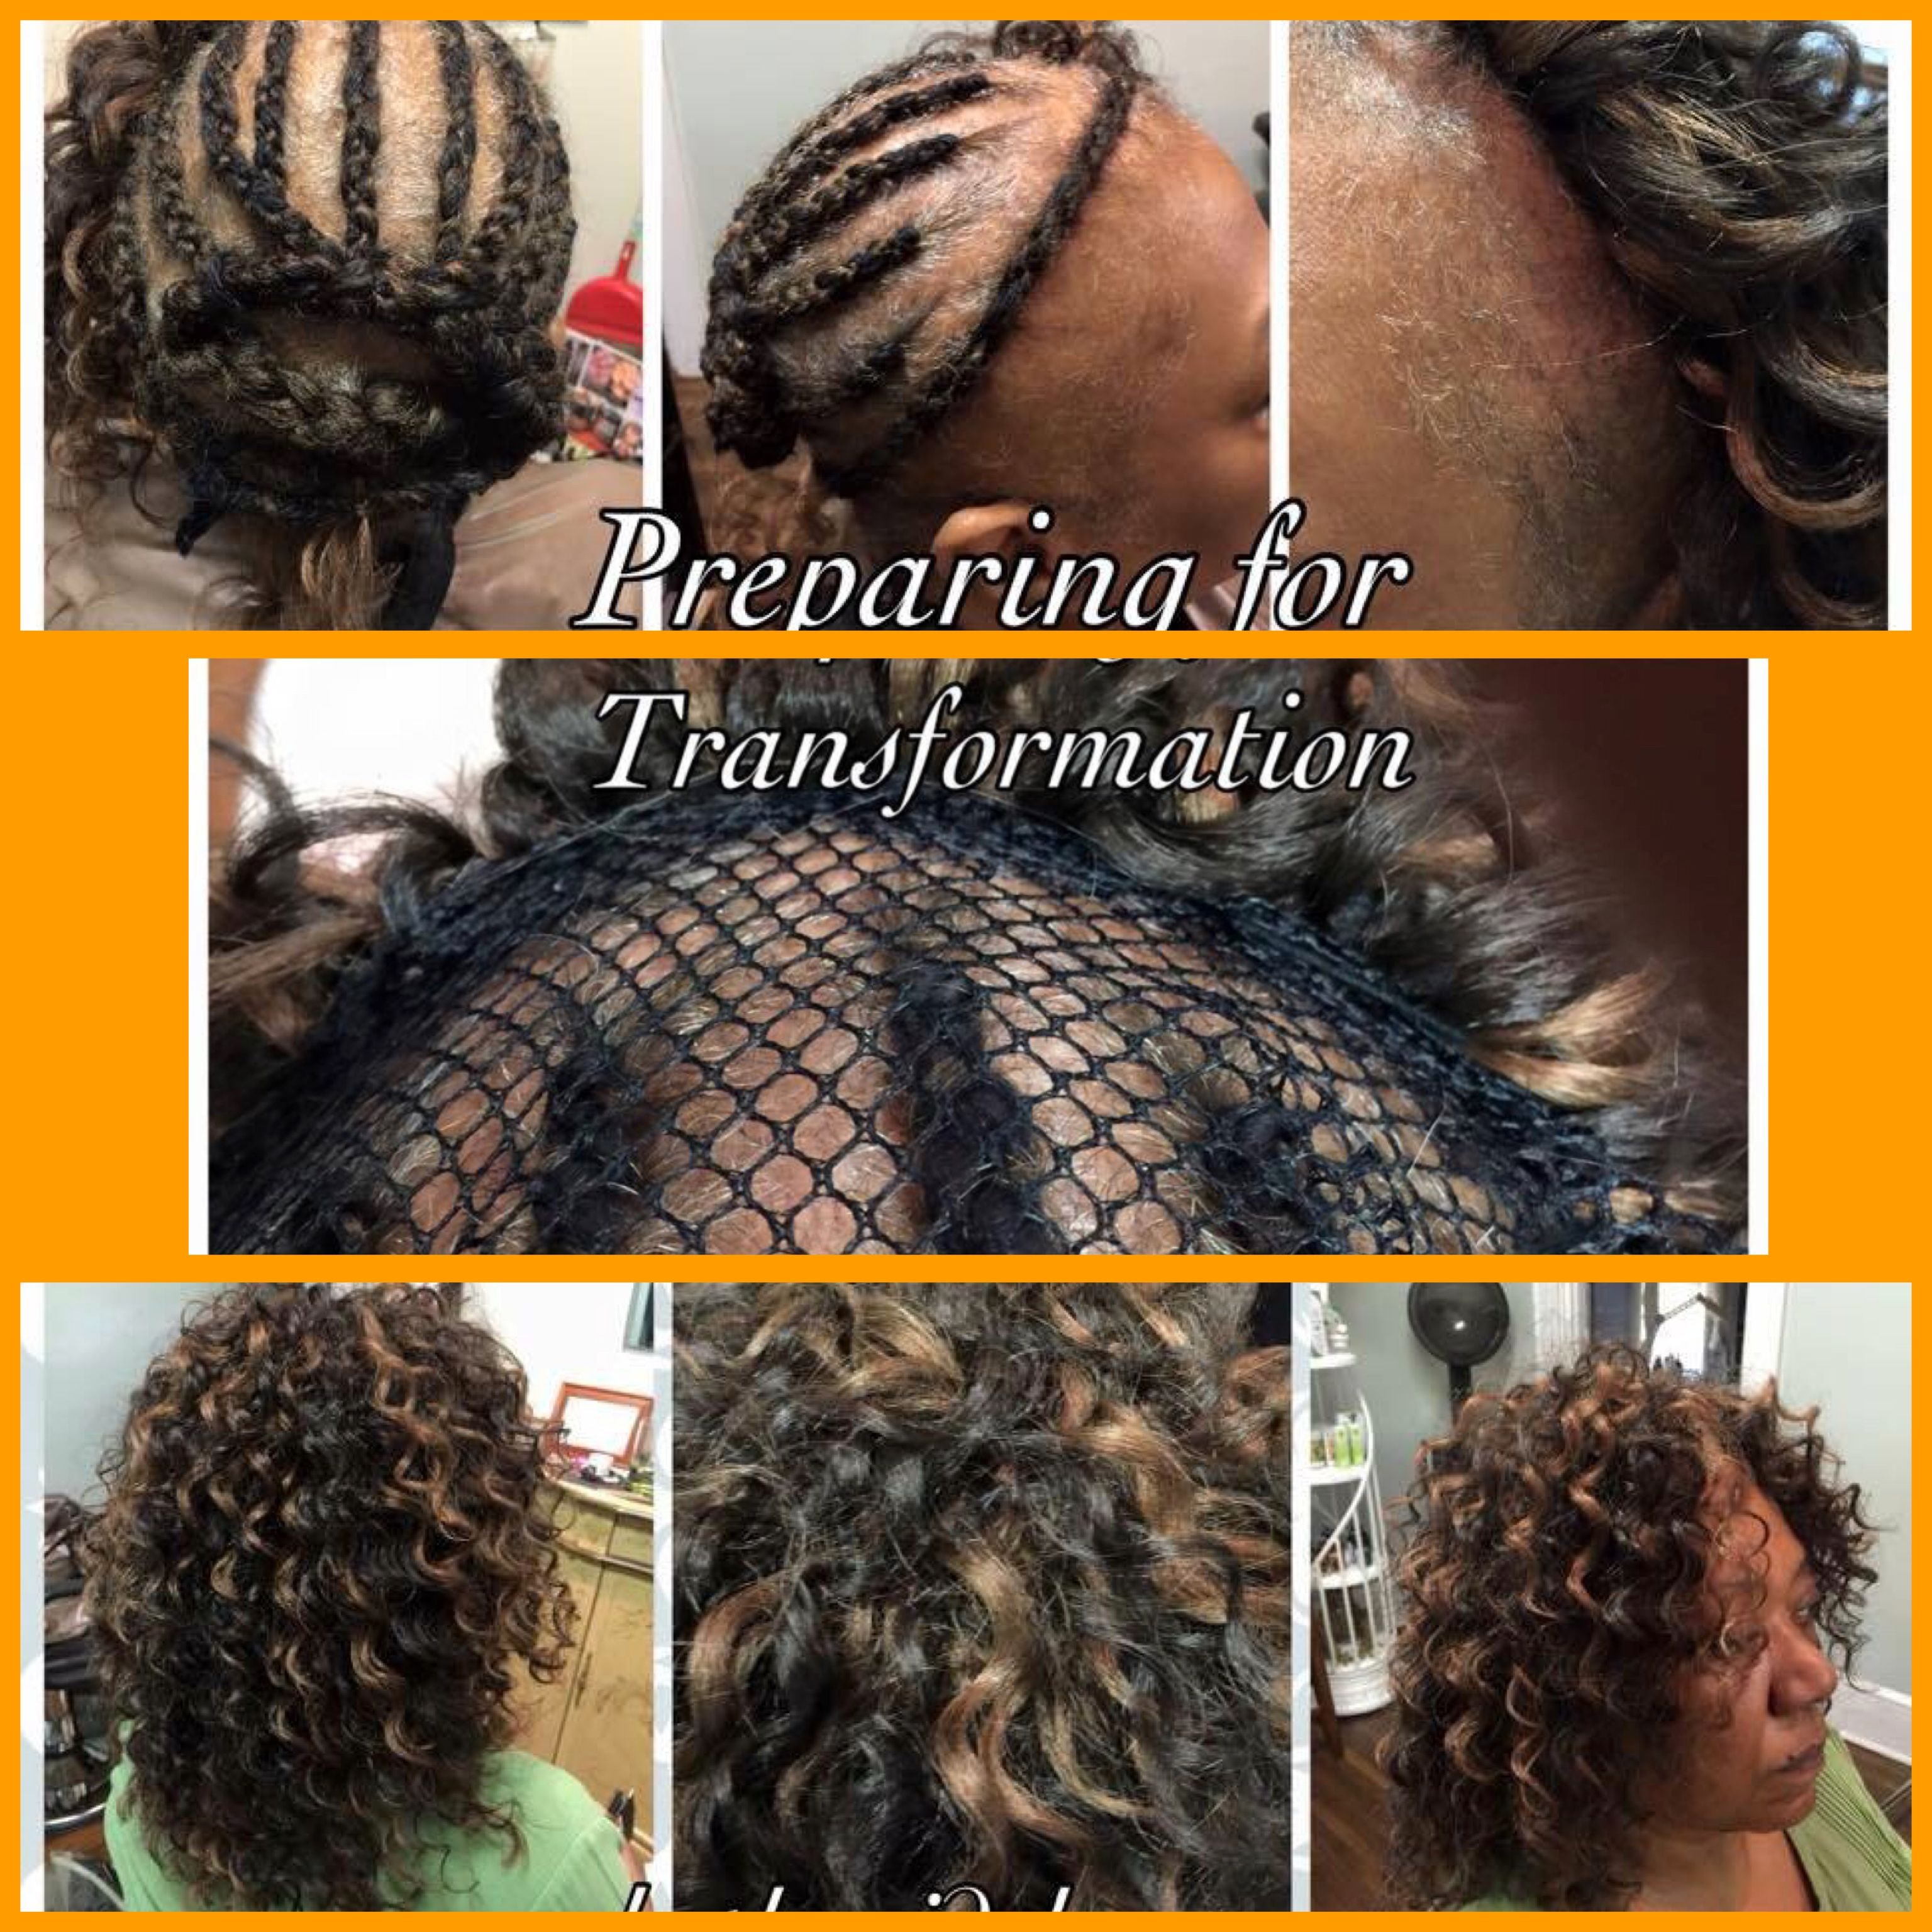 Crochet Braids For Hair Loss At Crochet Braid Elegancecom 704 953